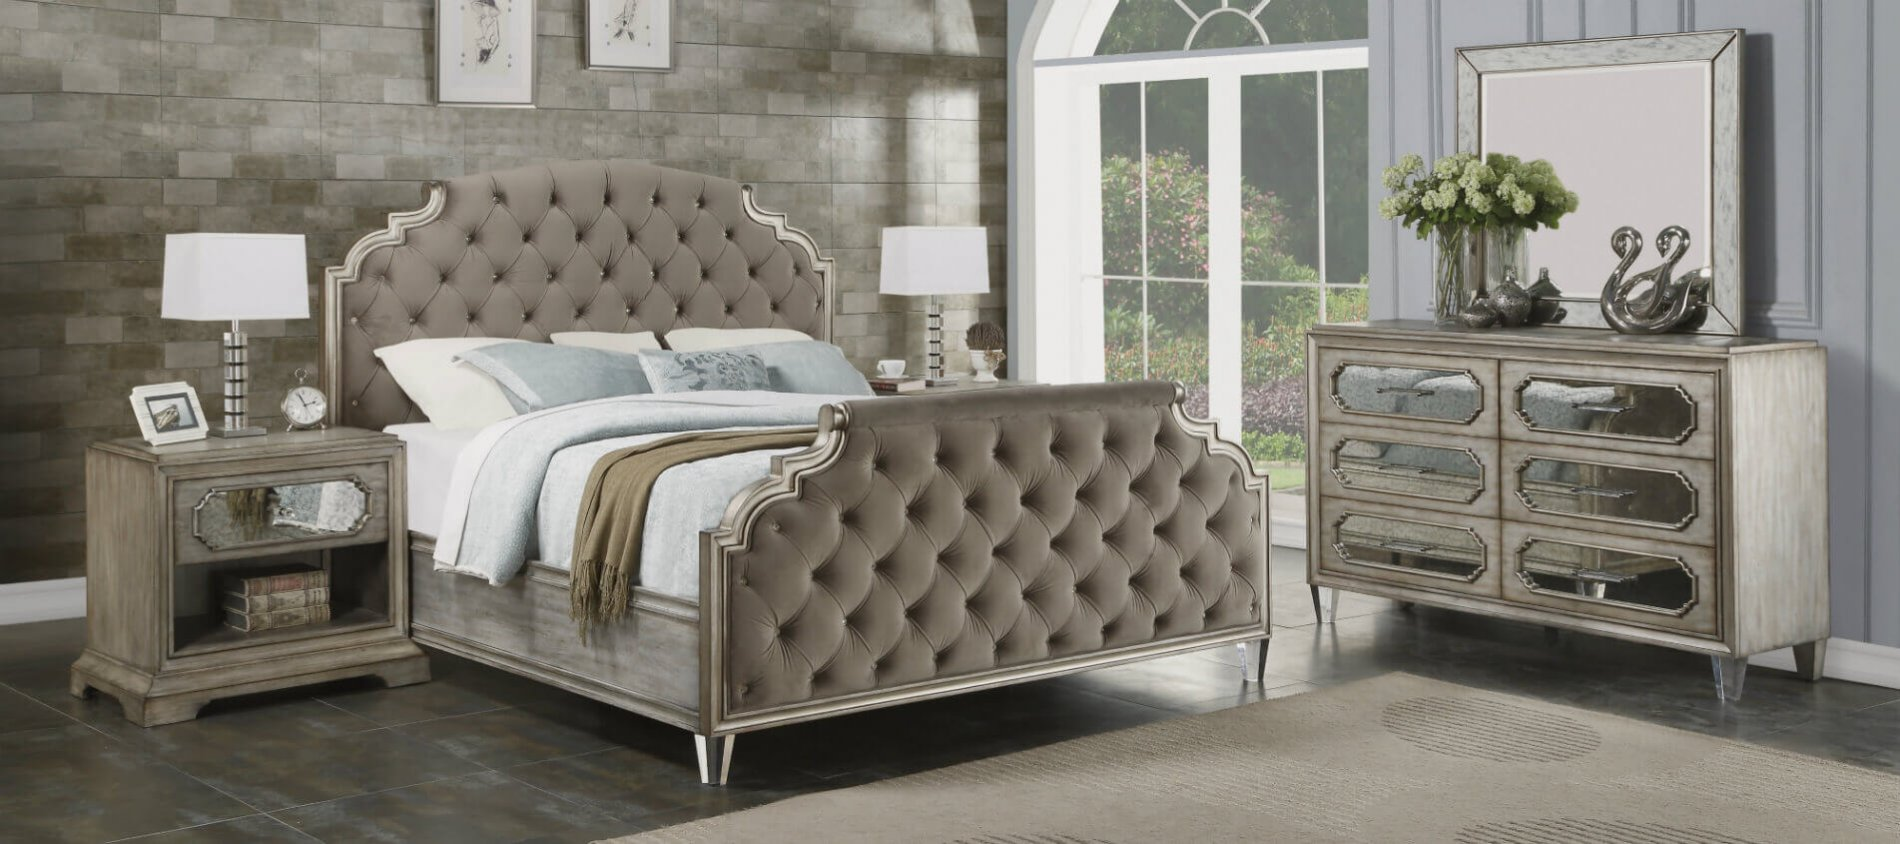 Vogue Bedroom Collection